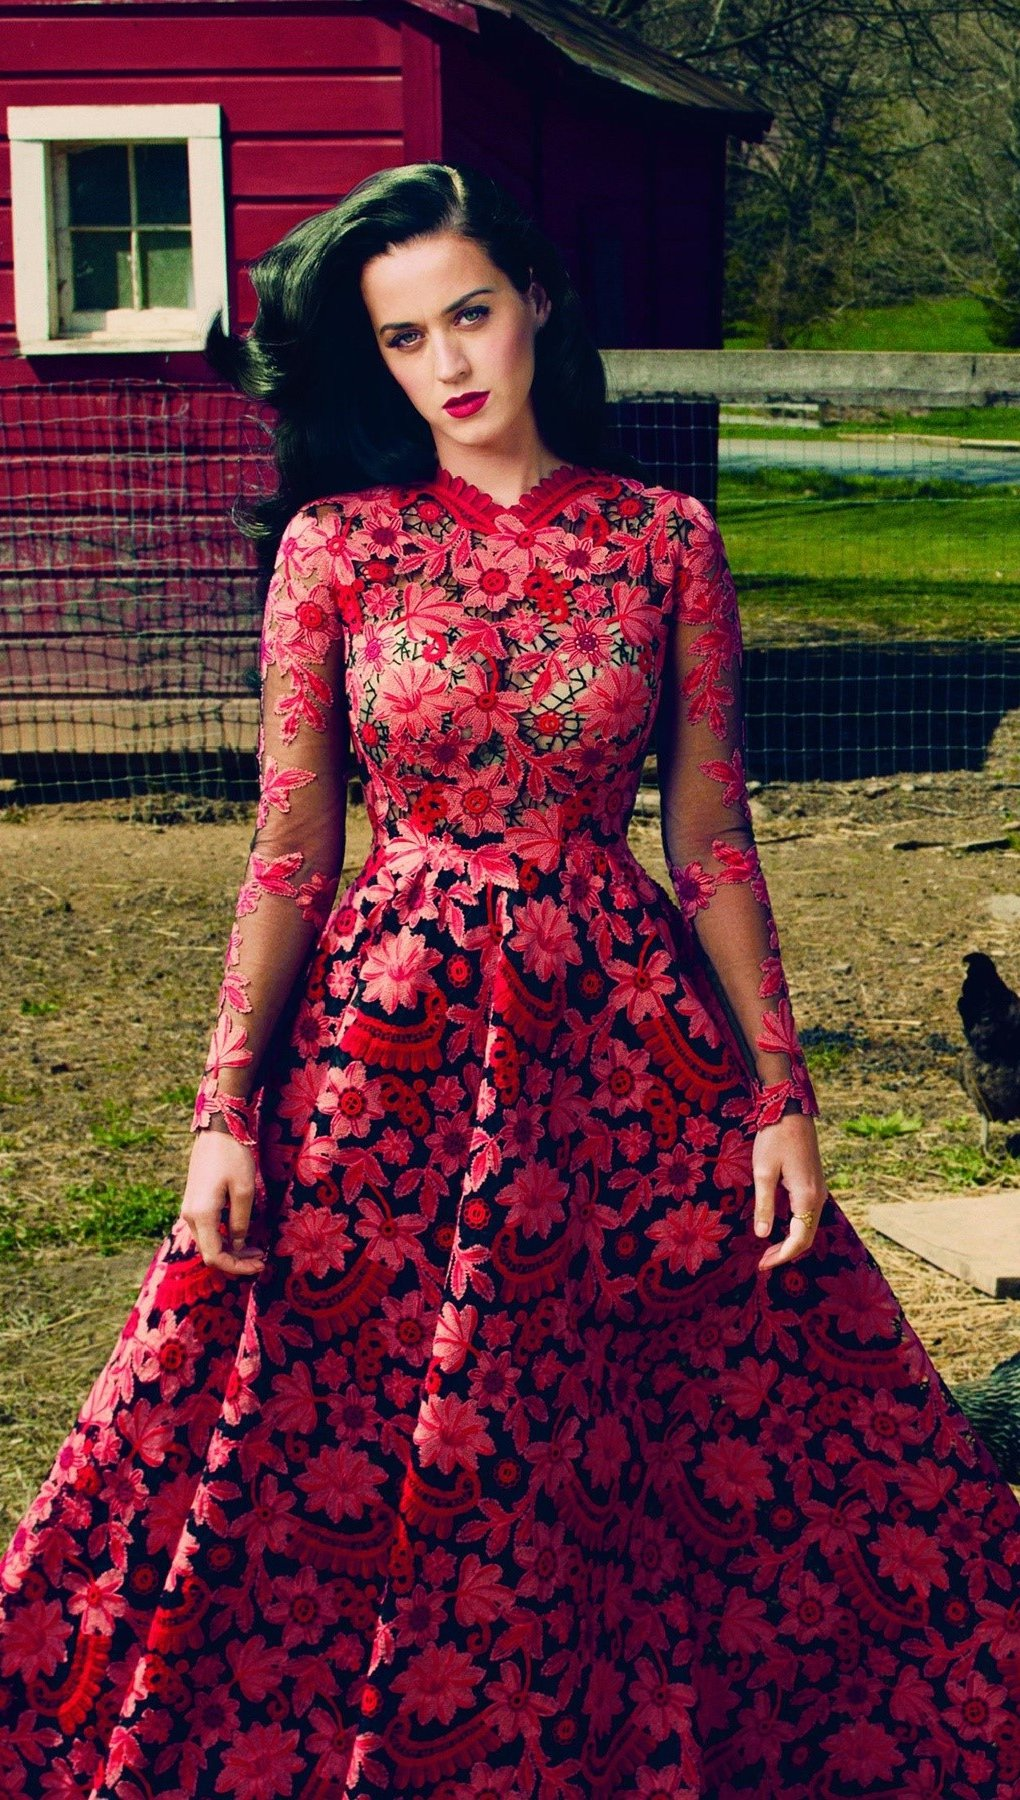 Wallpaper Katy Perry in a red dress Vertical